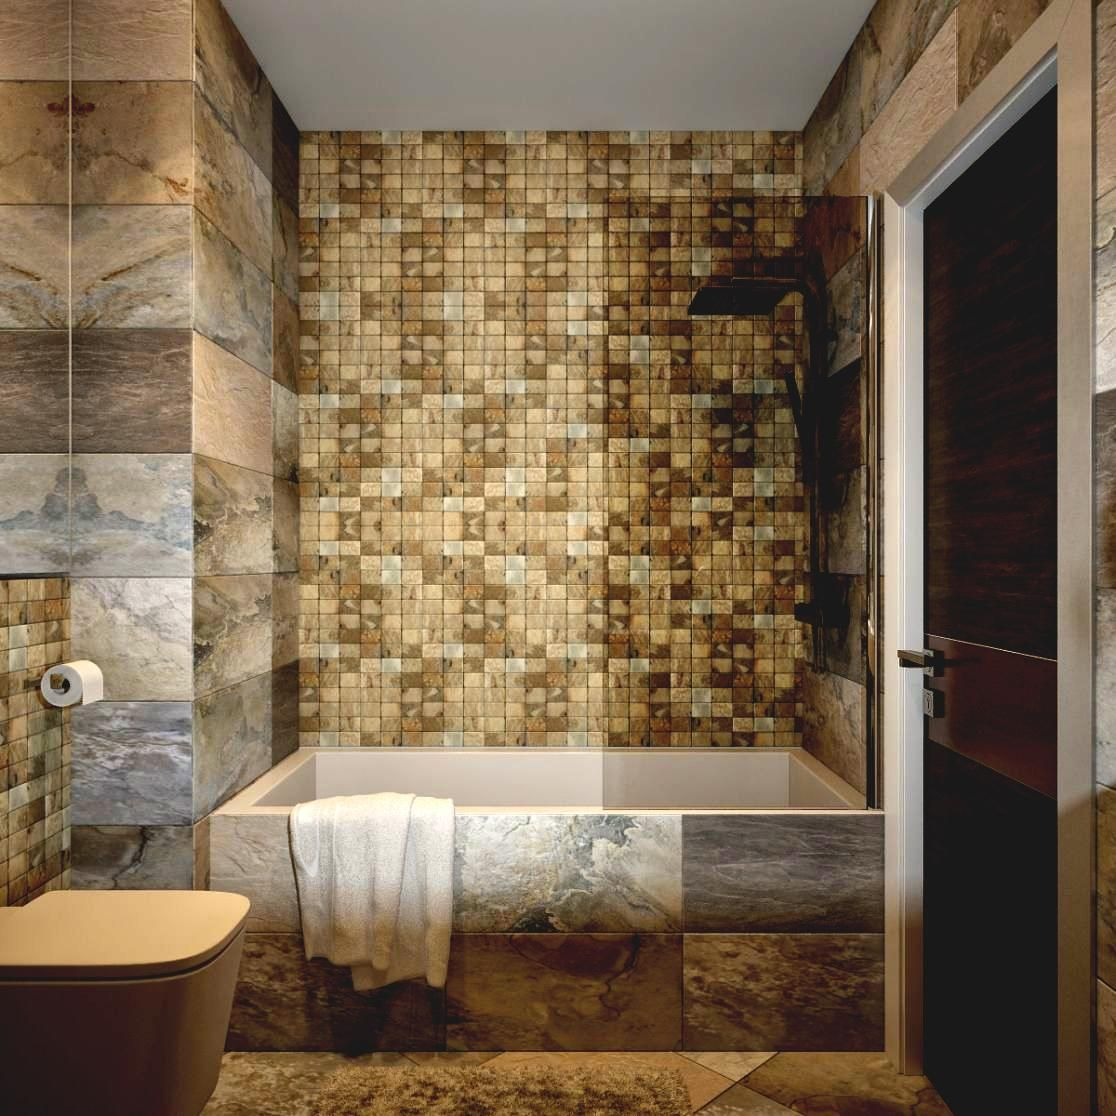 Remodeling bathroom ideas use cool decor relaxing bathroom designs remodeling bathroom ideas use cool decor relaxing bathroom designs for family house read more solutioingenieria Image collections